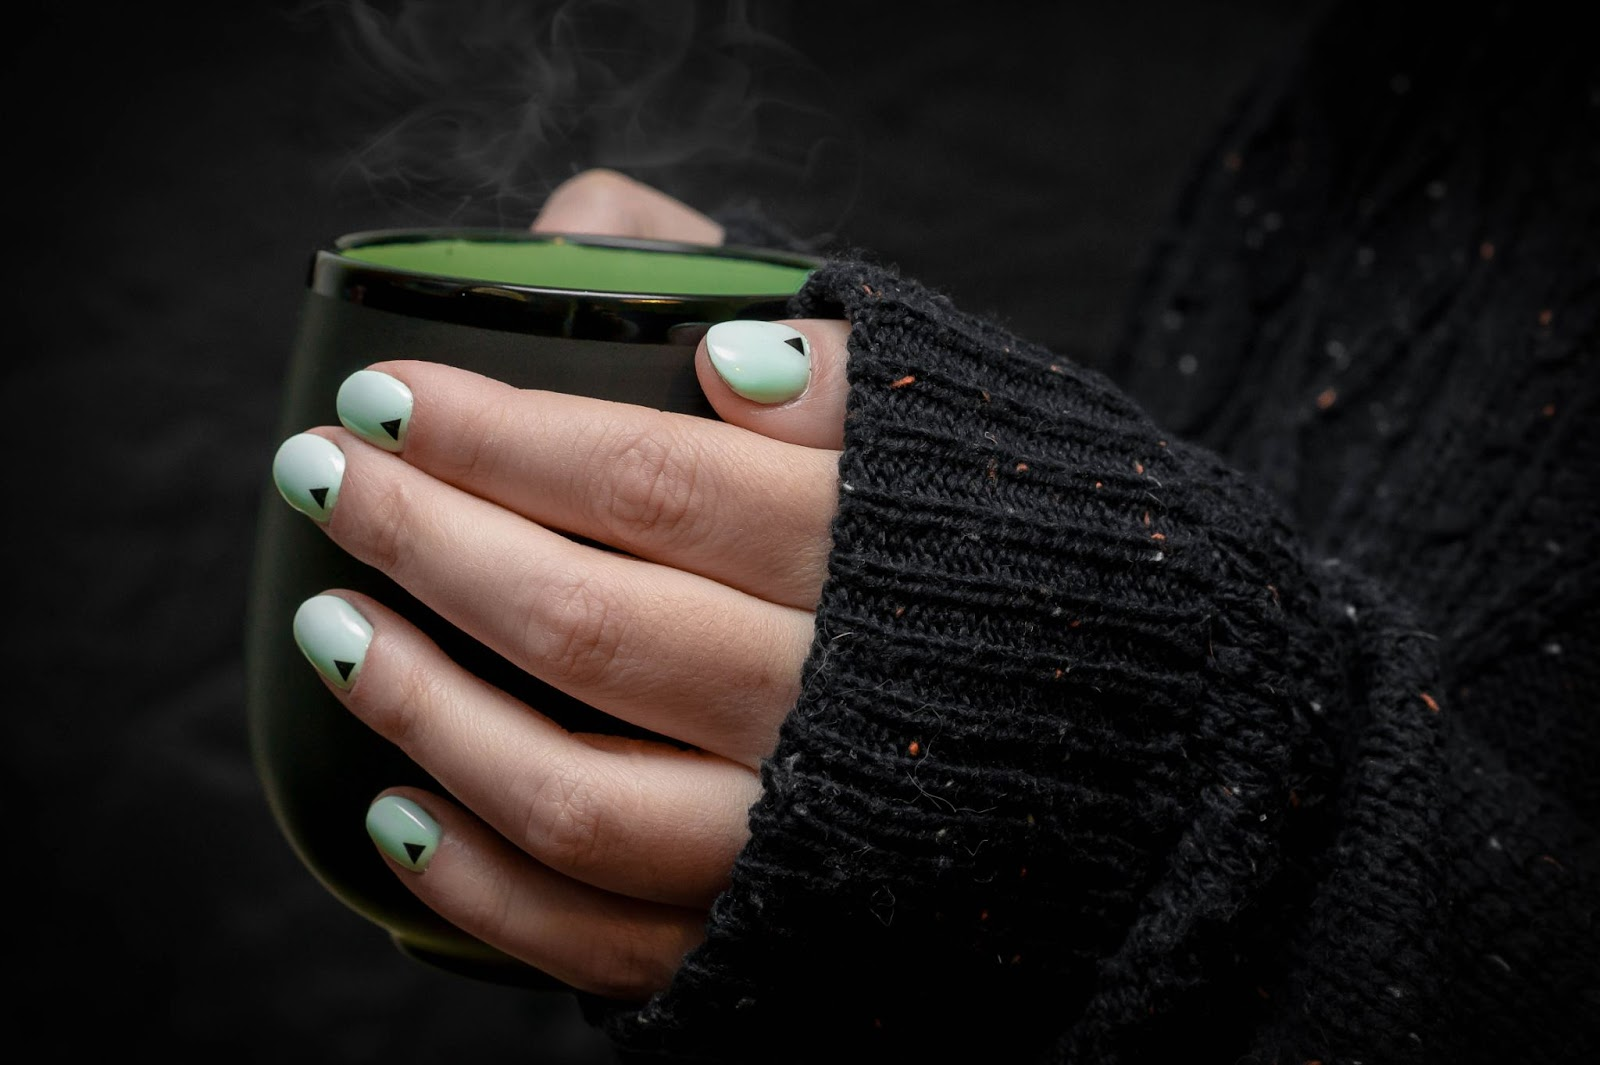 Close up of a green painted finger nails holding a black coffee cup. 'Press on nails' is one of the popular beauty & jewelry keywords on Etsy.